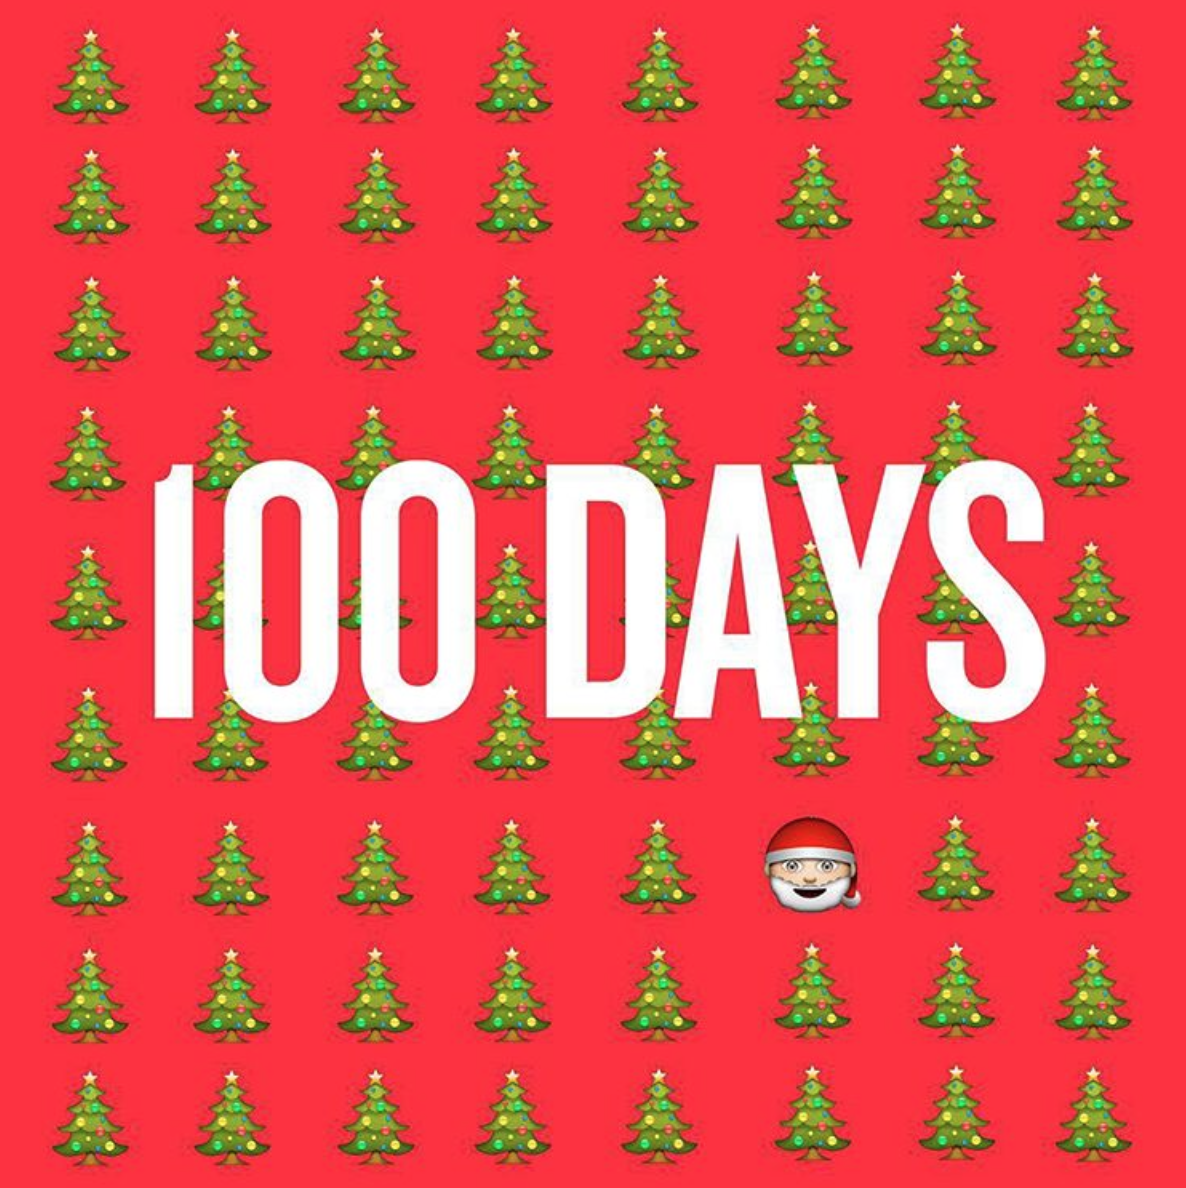 psa theres only 100 days until christmas